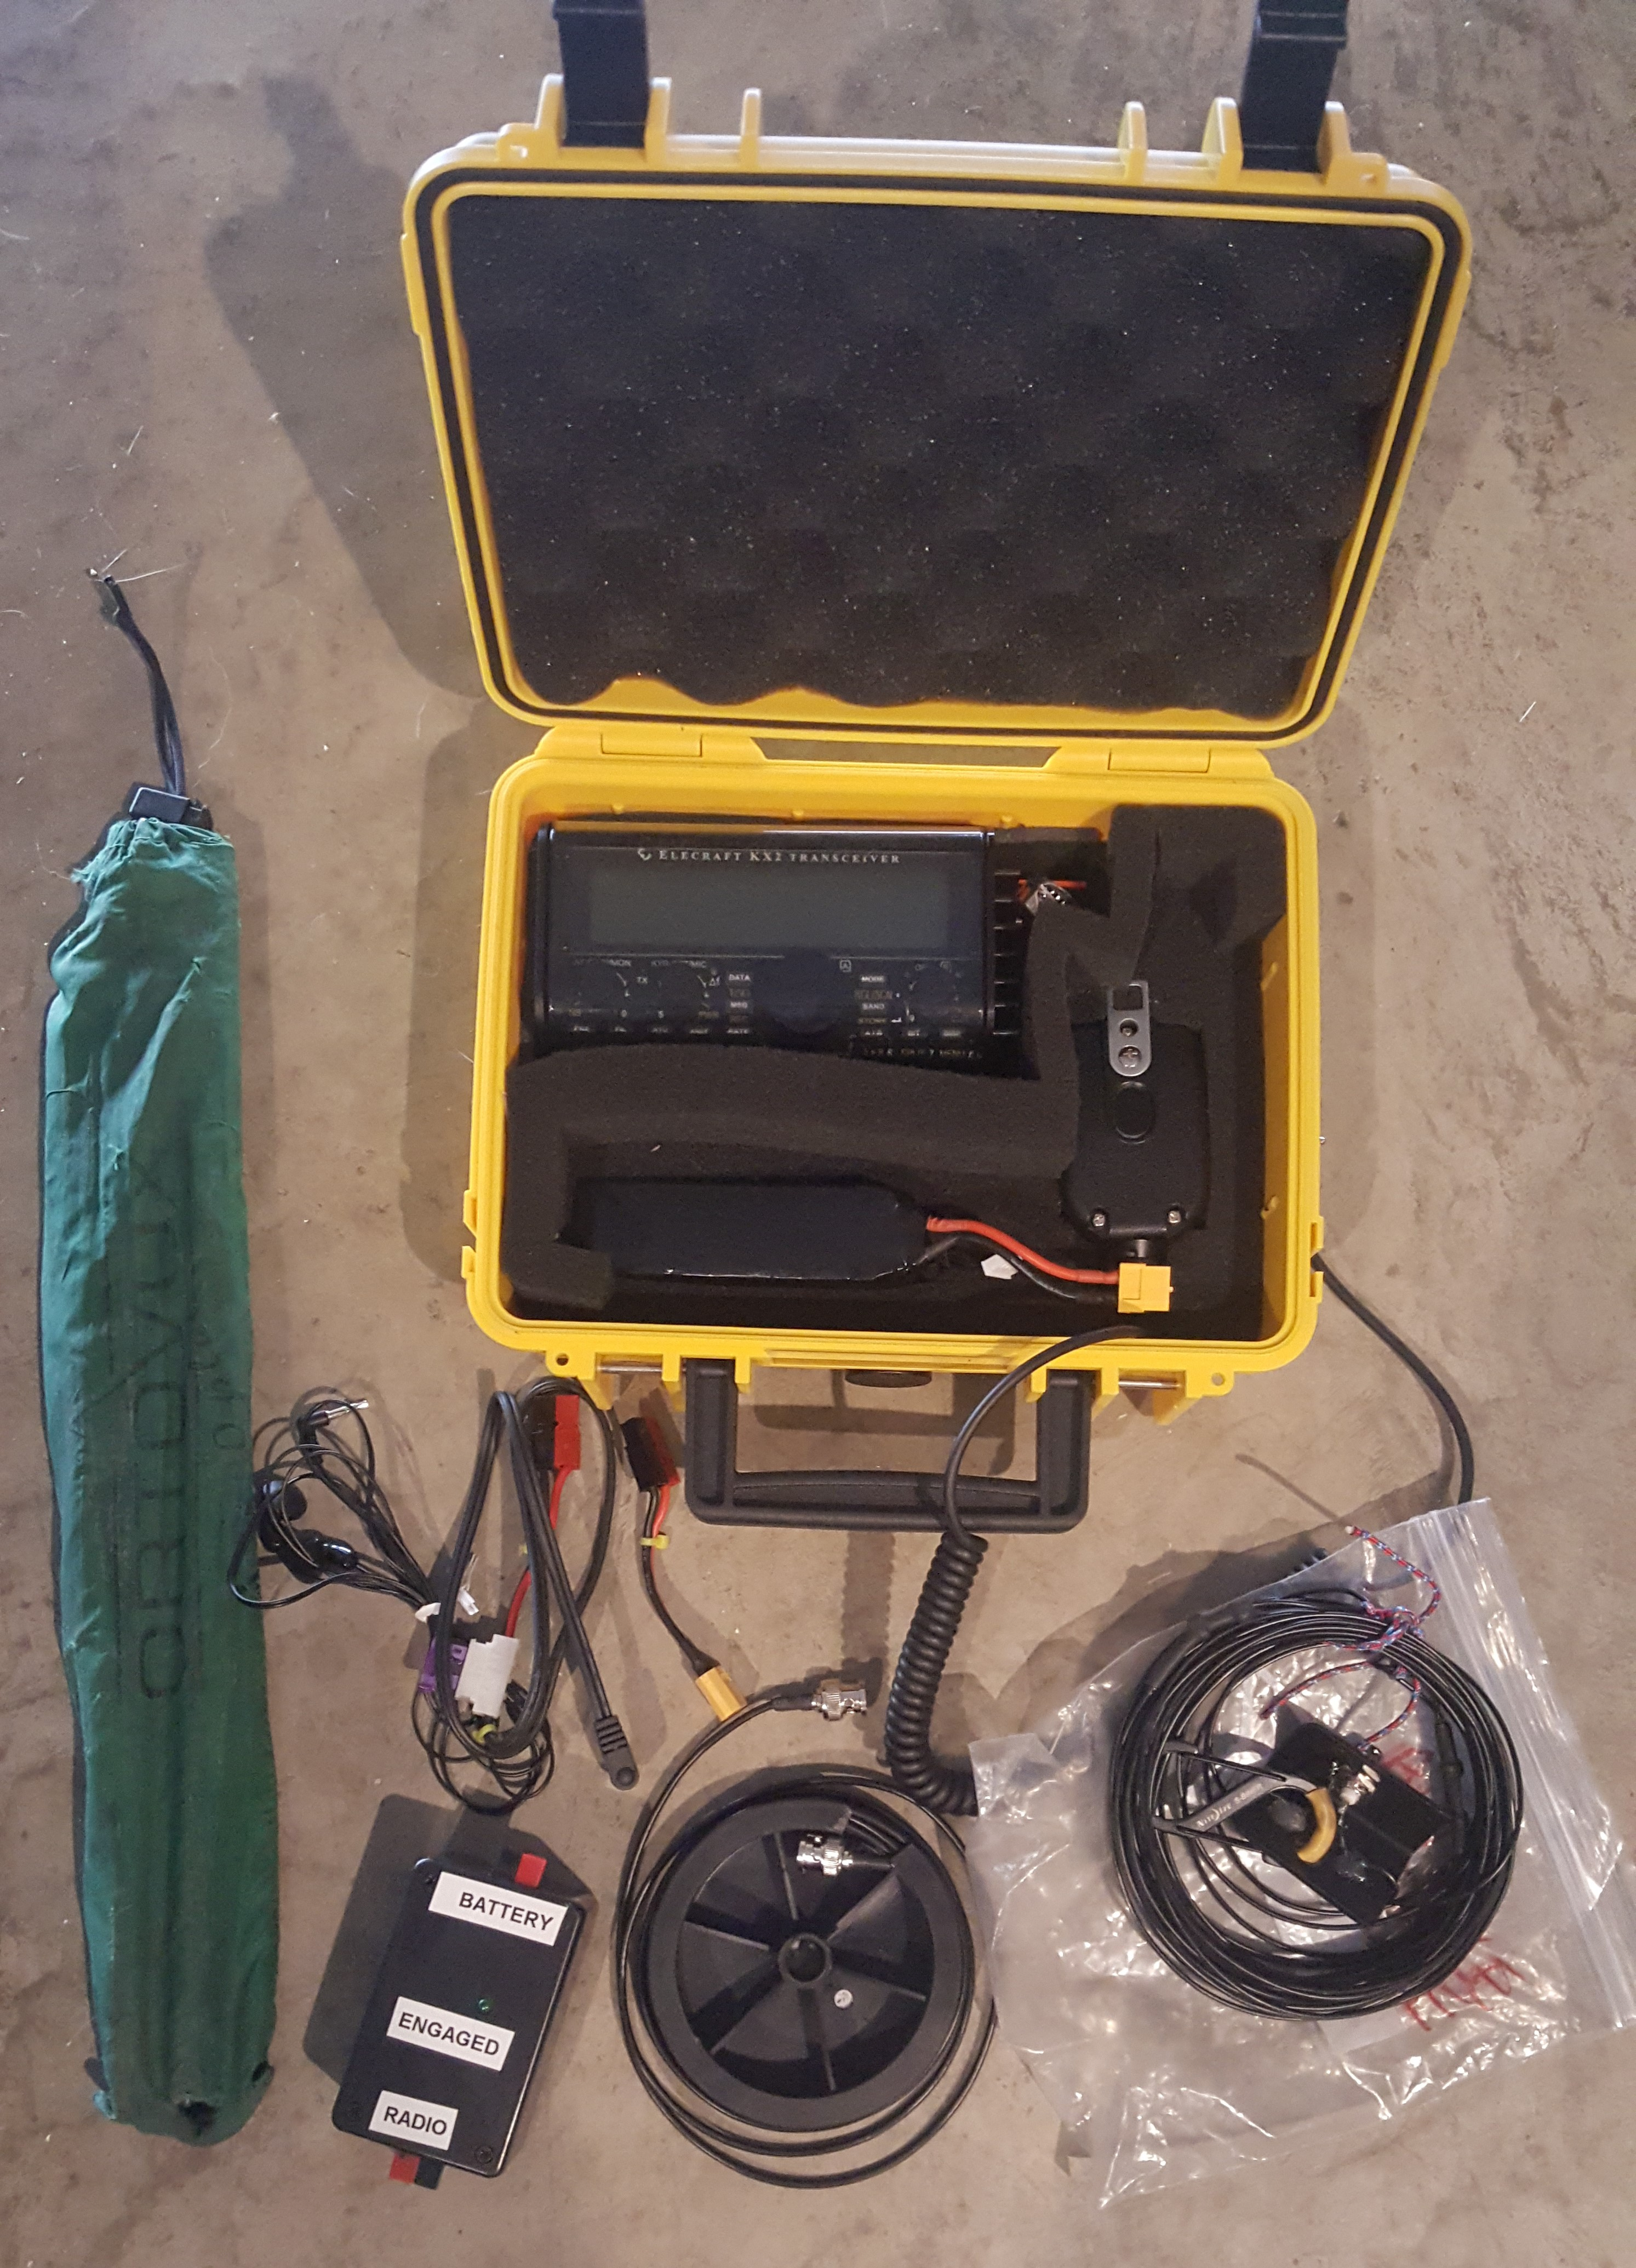 Show us your rig! - Equipment - SOTA Reflector